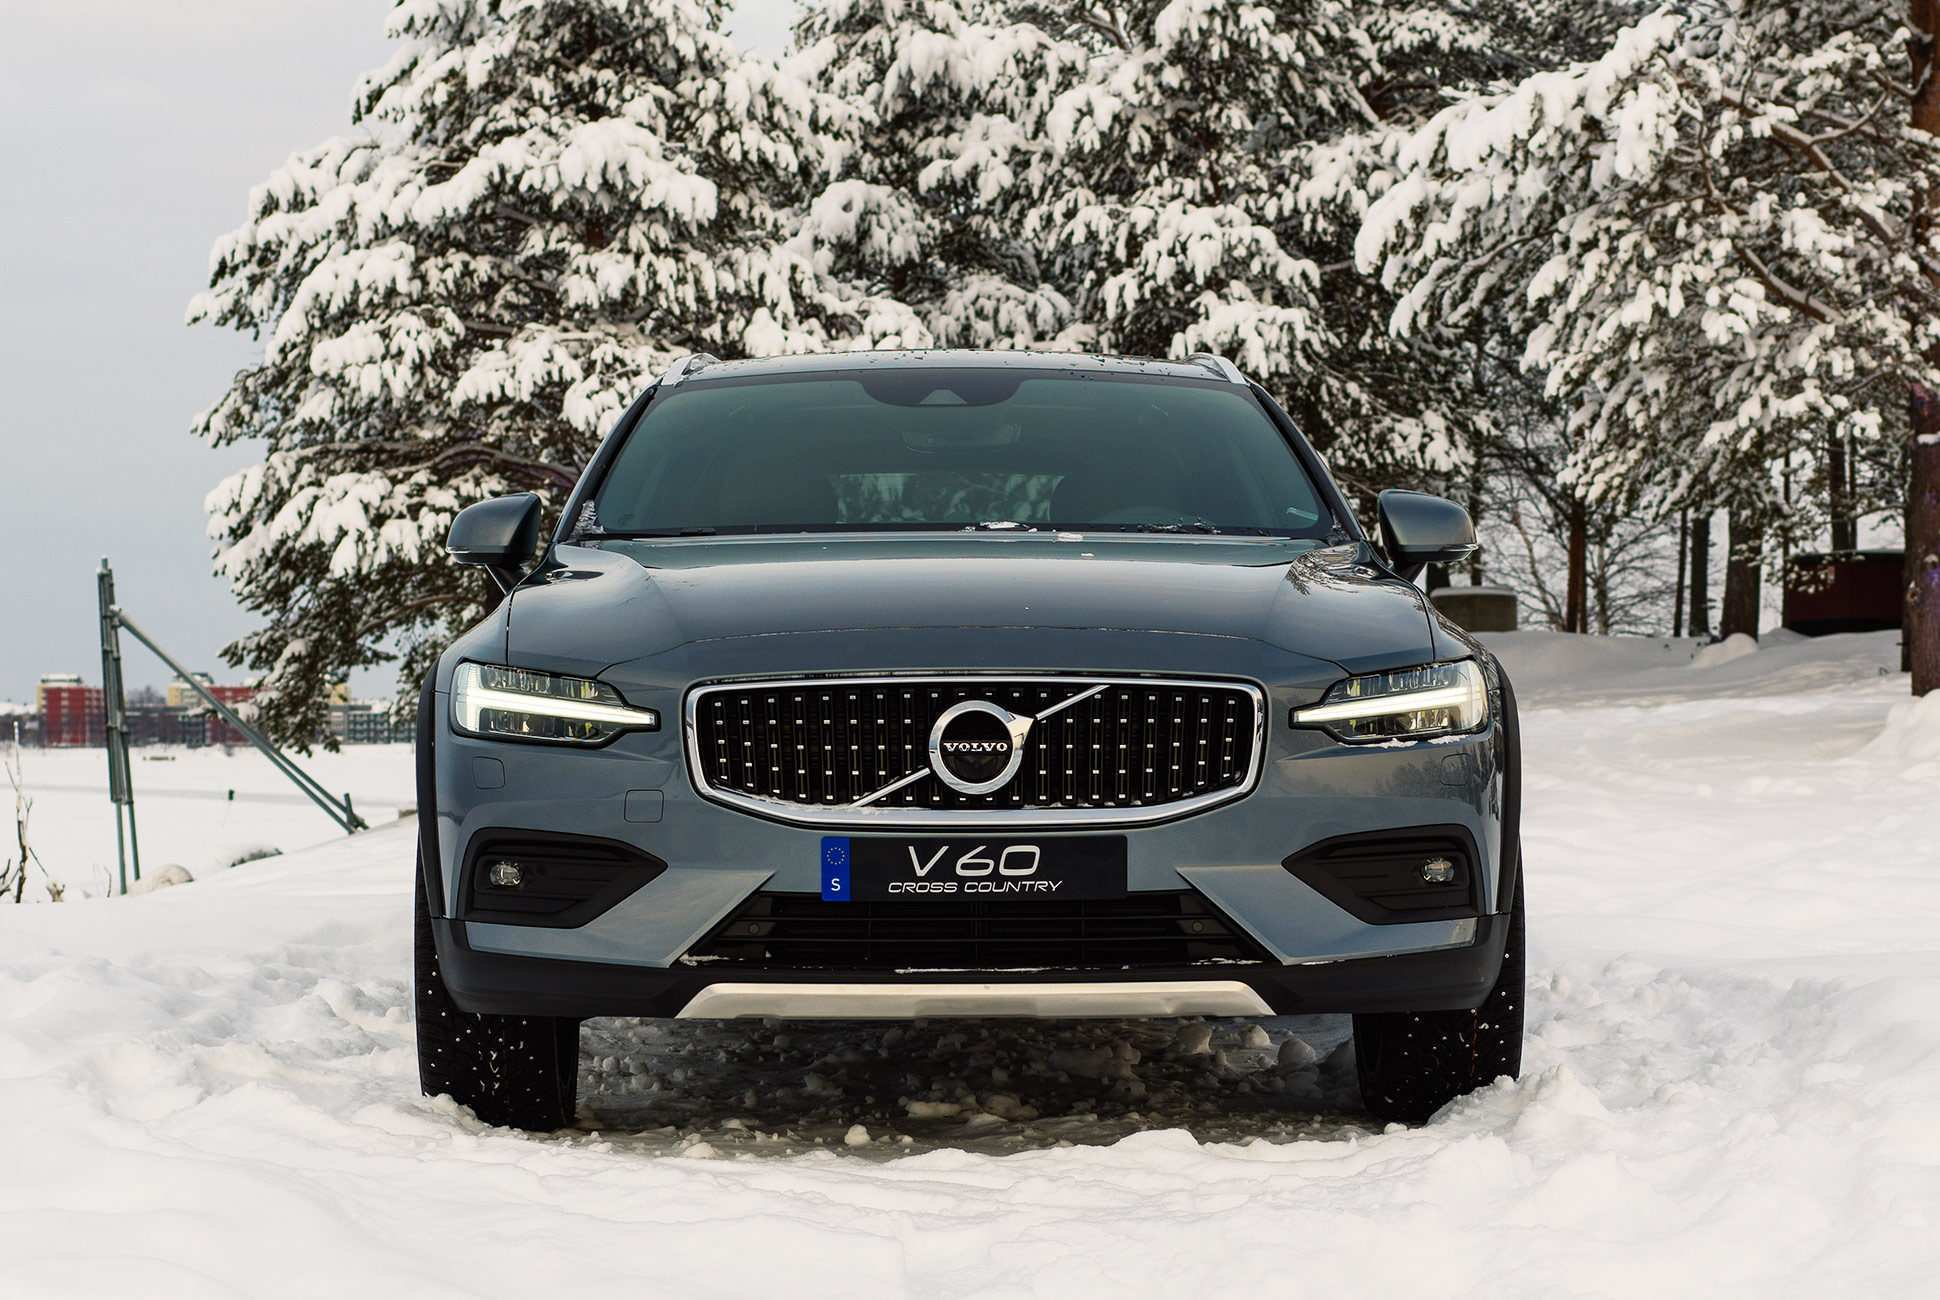 60 The 2020 Volvo V60 Cross Country Overview